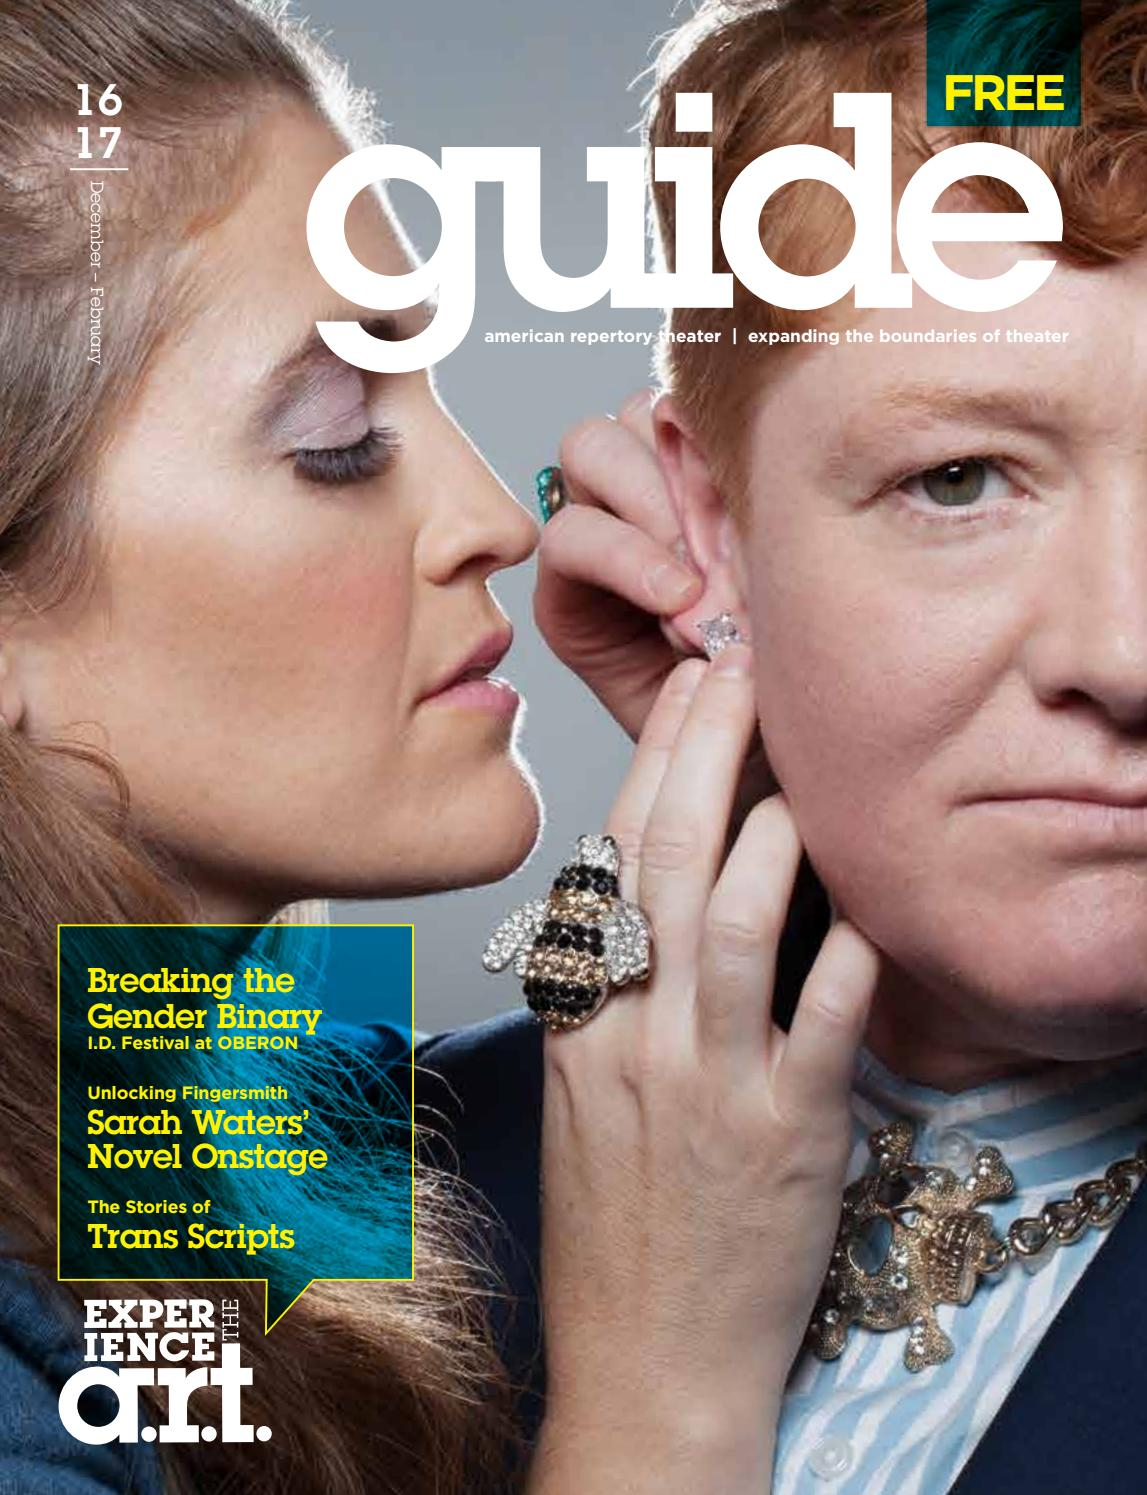 A.R.T. Winter Guide 2016-2017 Side 1 by American Repertory Theater - issuu